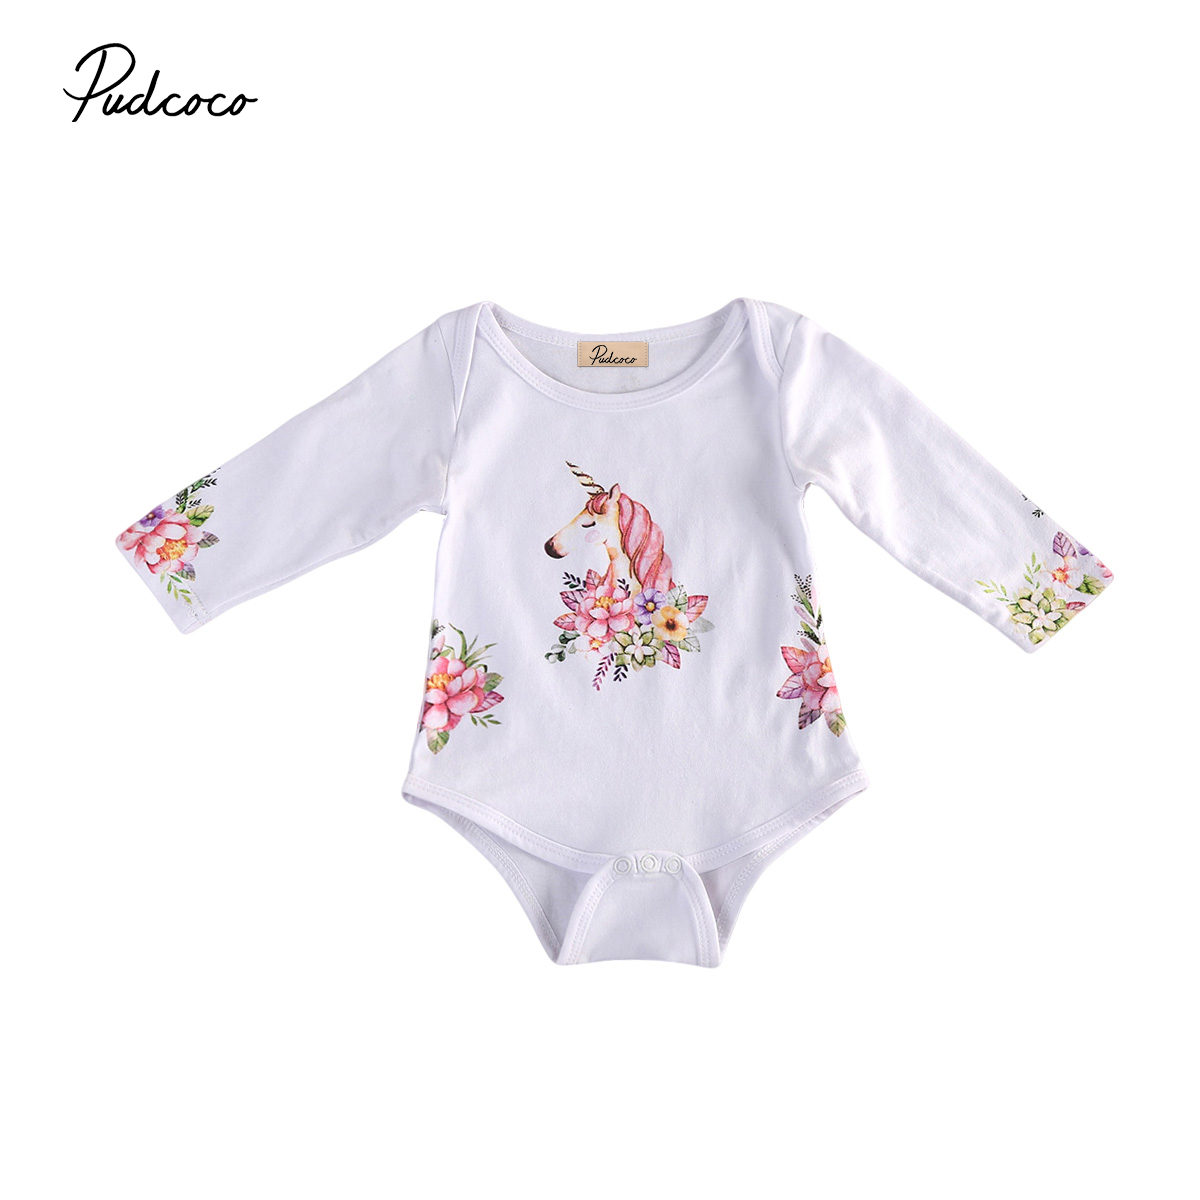 e22e26cbb Cartoon Casual Stock Newborn Kids Baby Boy Girl Unicorn Romper Jumpsuit  Clothes Outfit 0 24M Cotton -in Bodysuits from Mother & Kids on  Aliexpress.com ...